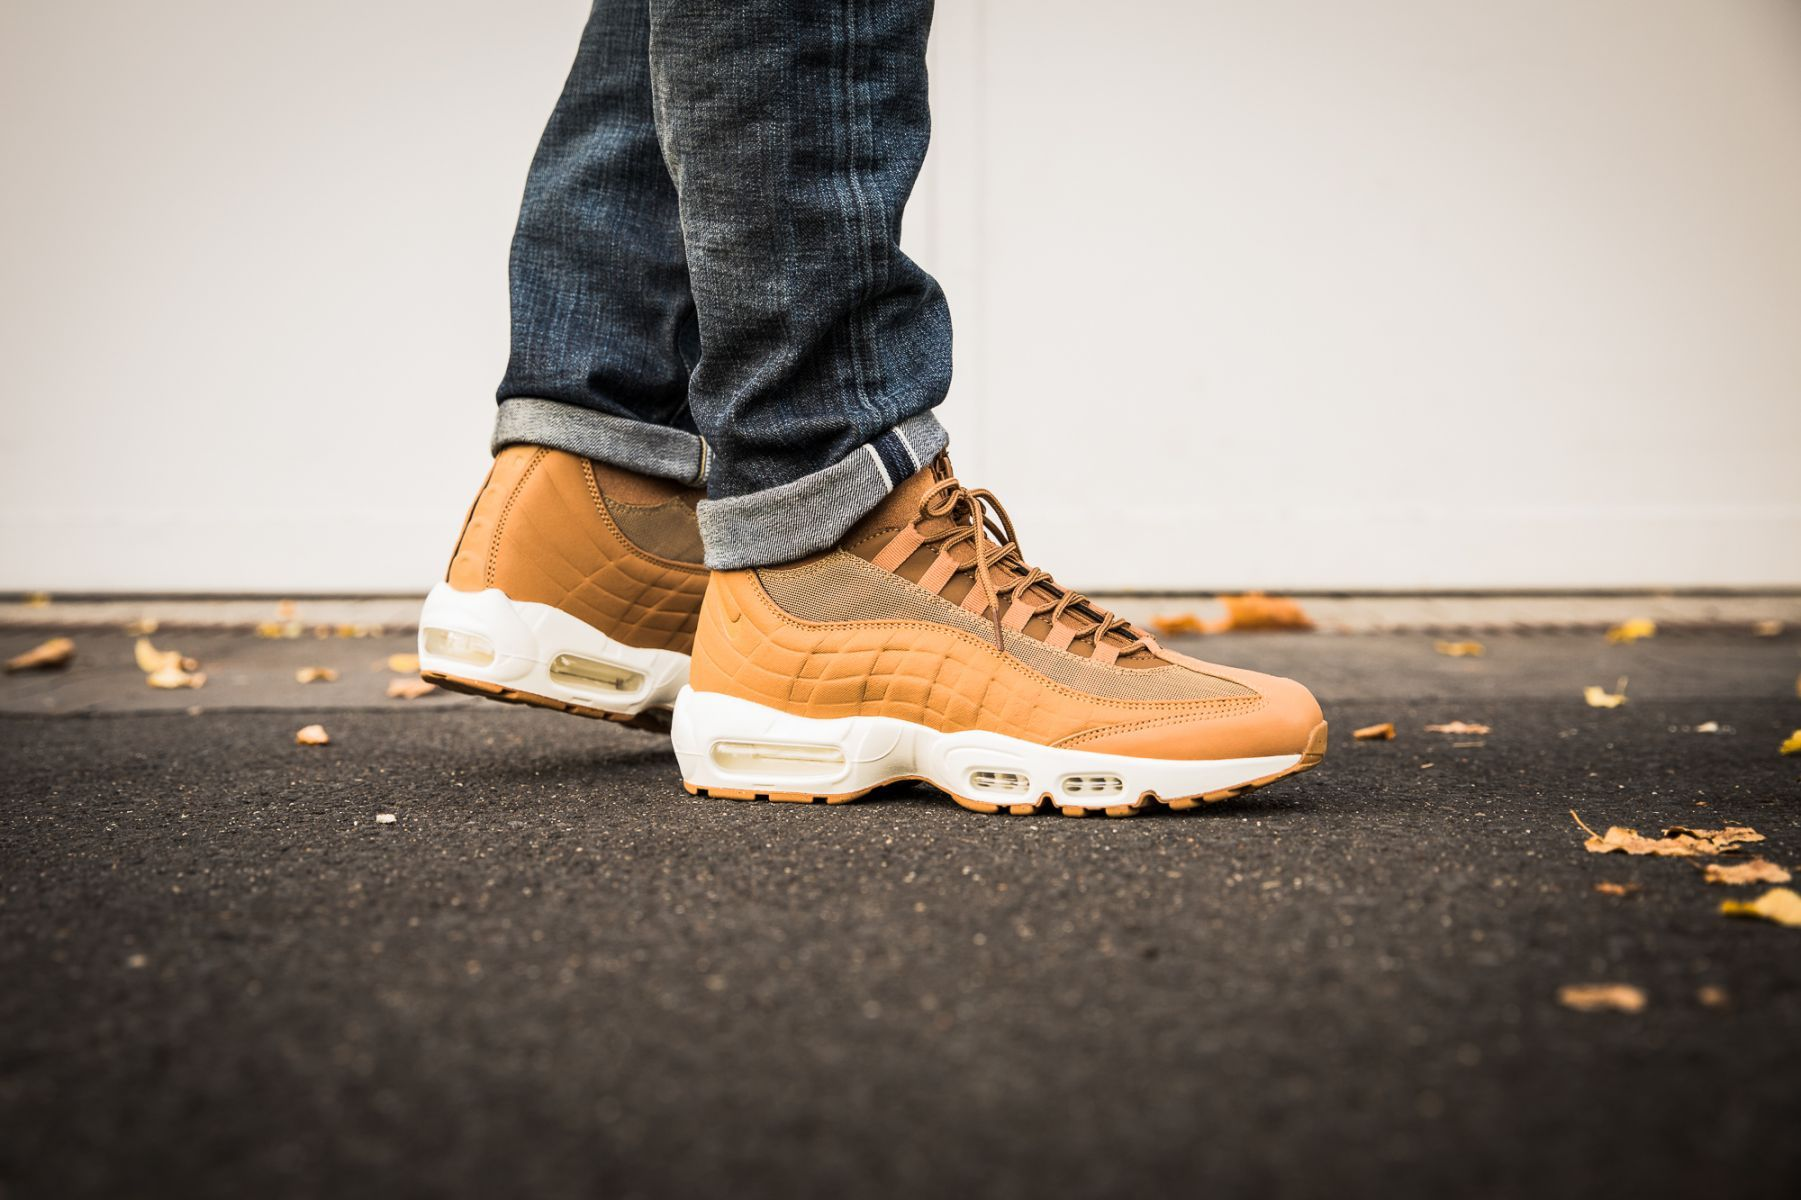 reputable site 7469c 29e09 Nike Air Max 95 Sneakerboot Wheat Pack - 806809-201   43einhalb sneaker  store